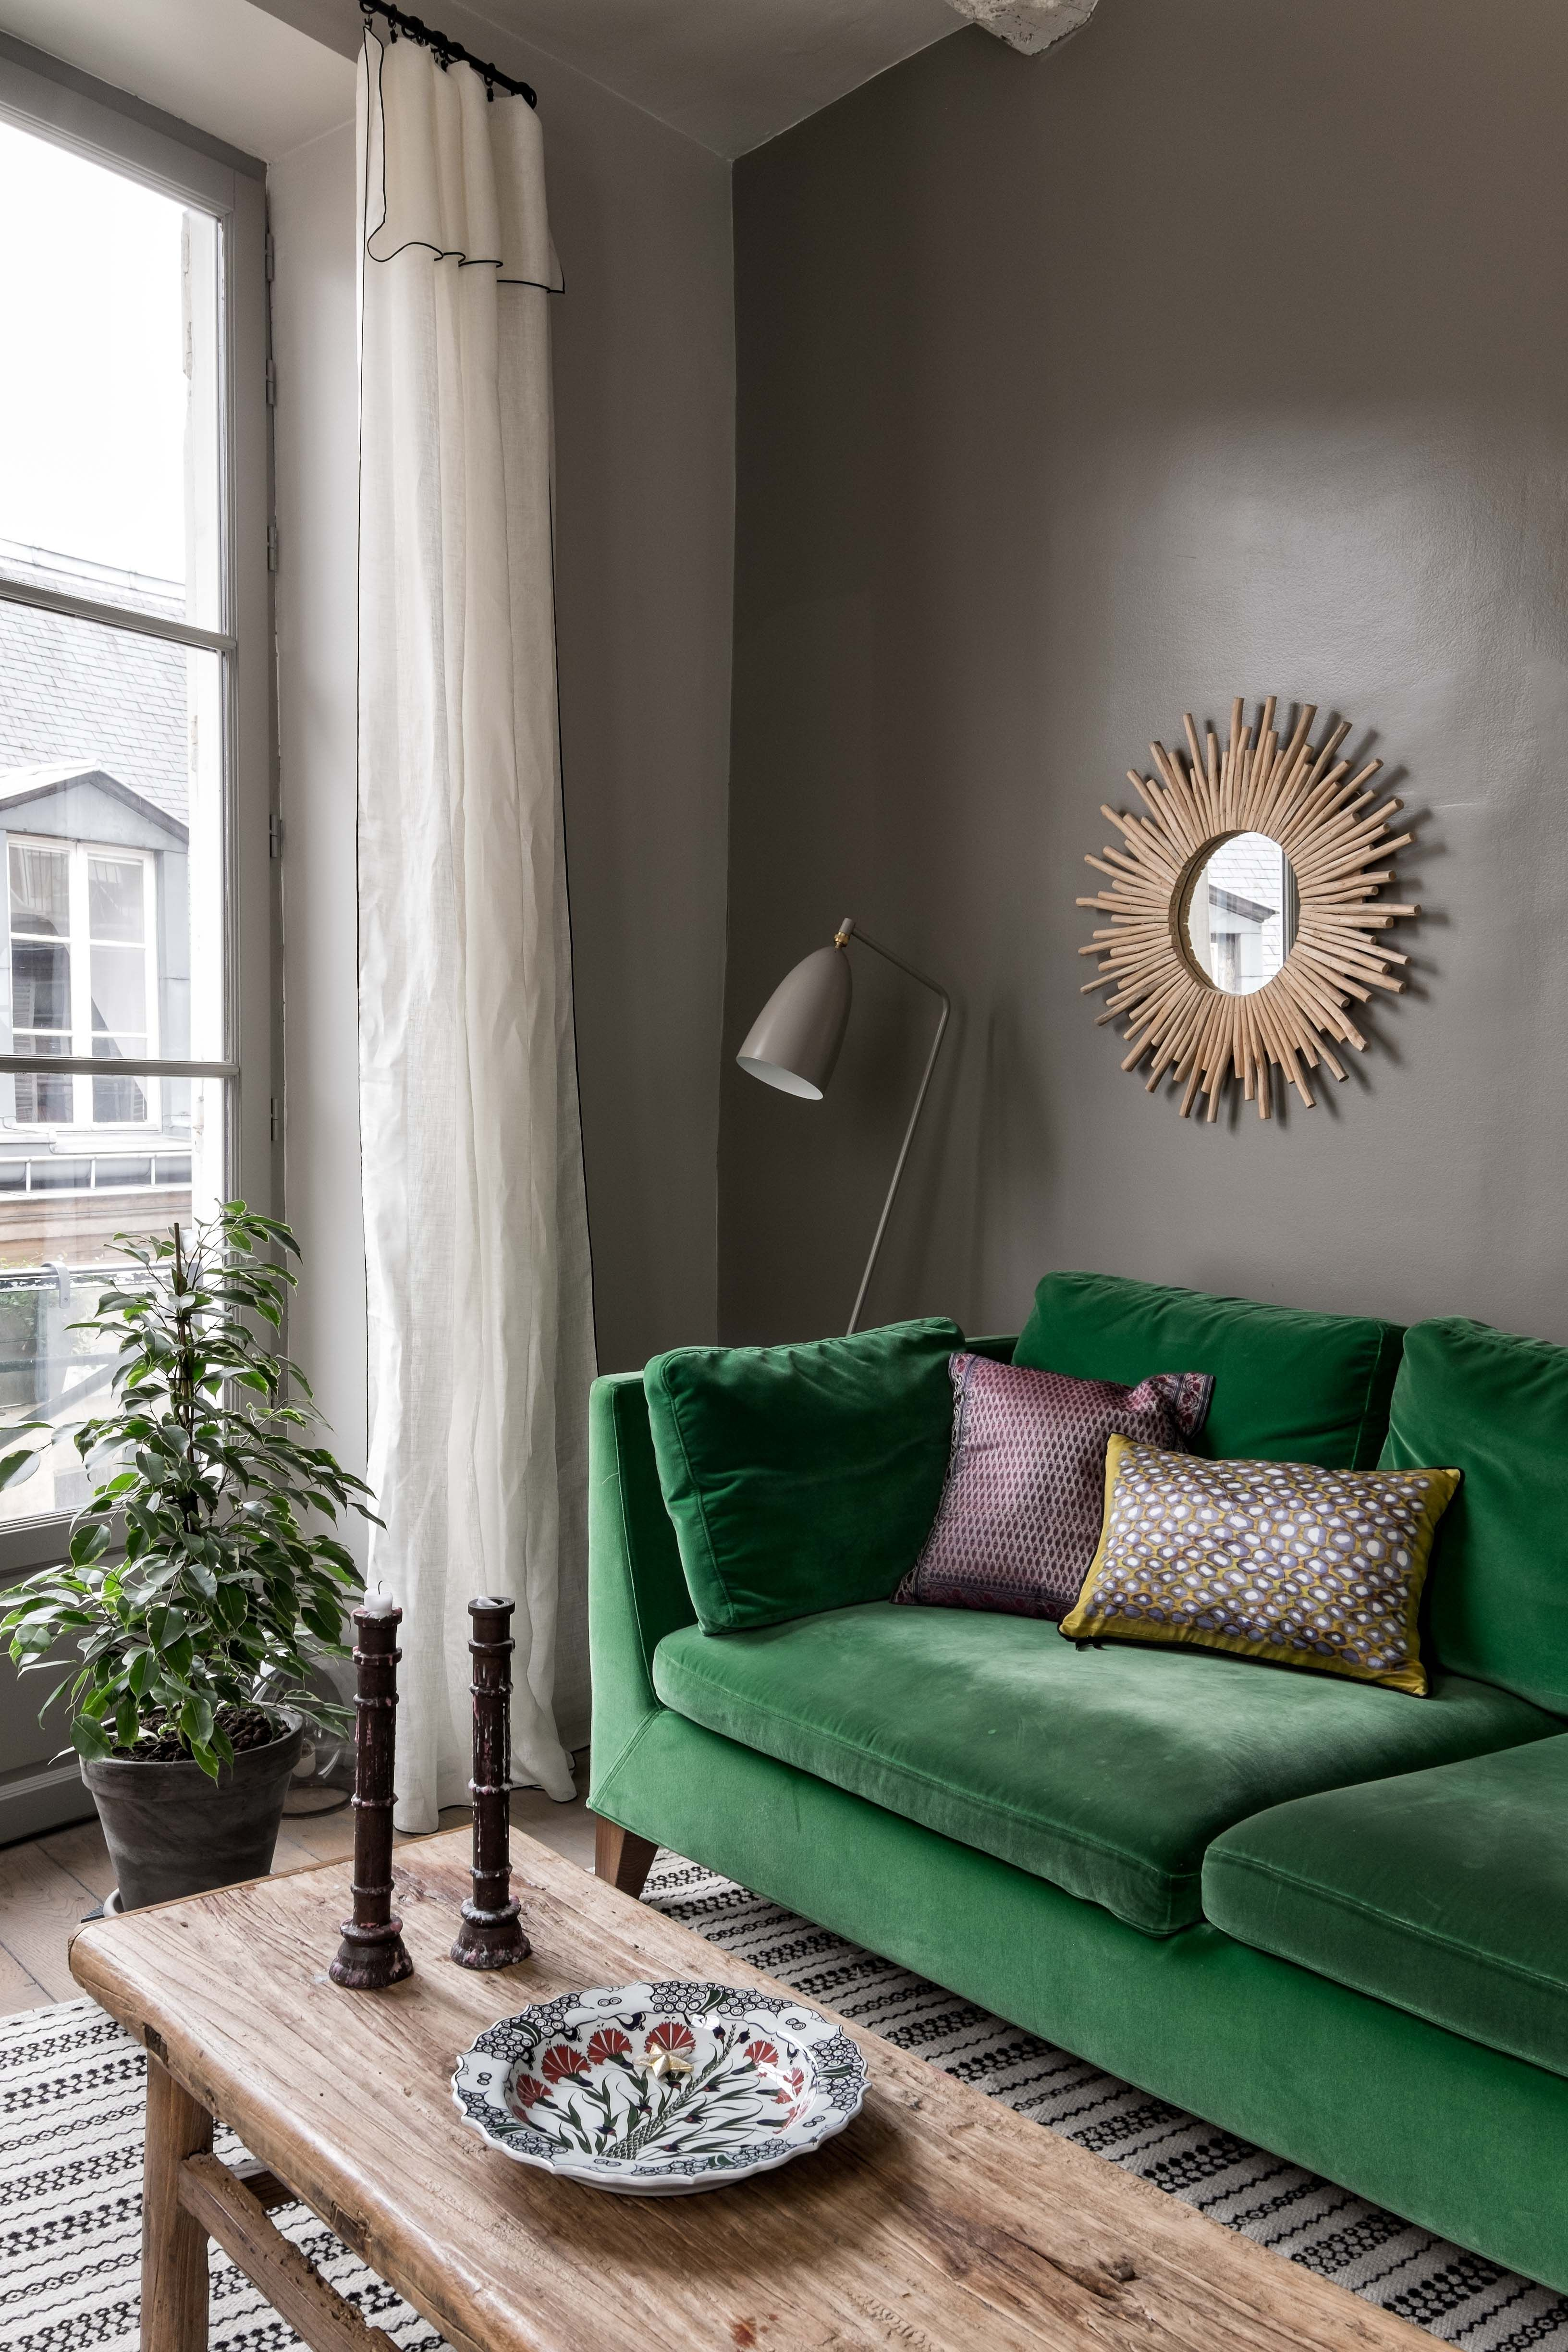 A Velvet Green Sofa Before A Dark Wall Interiordecor Pinterest Dark Walls Dark And Walls